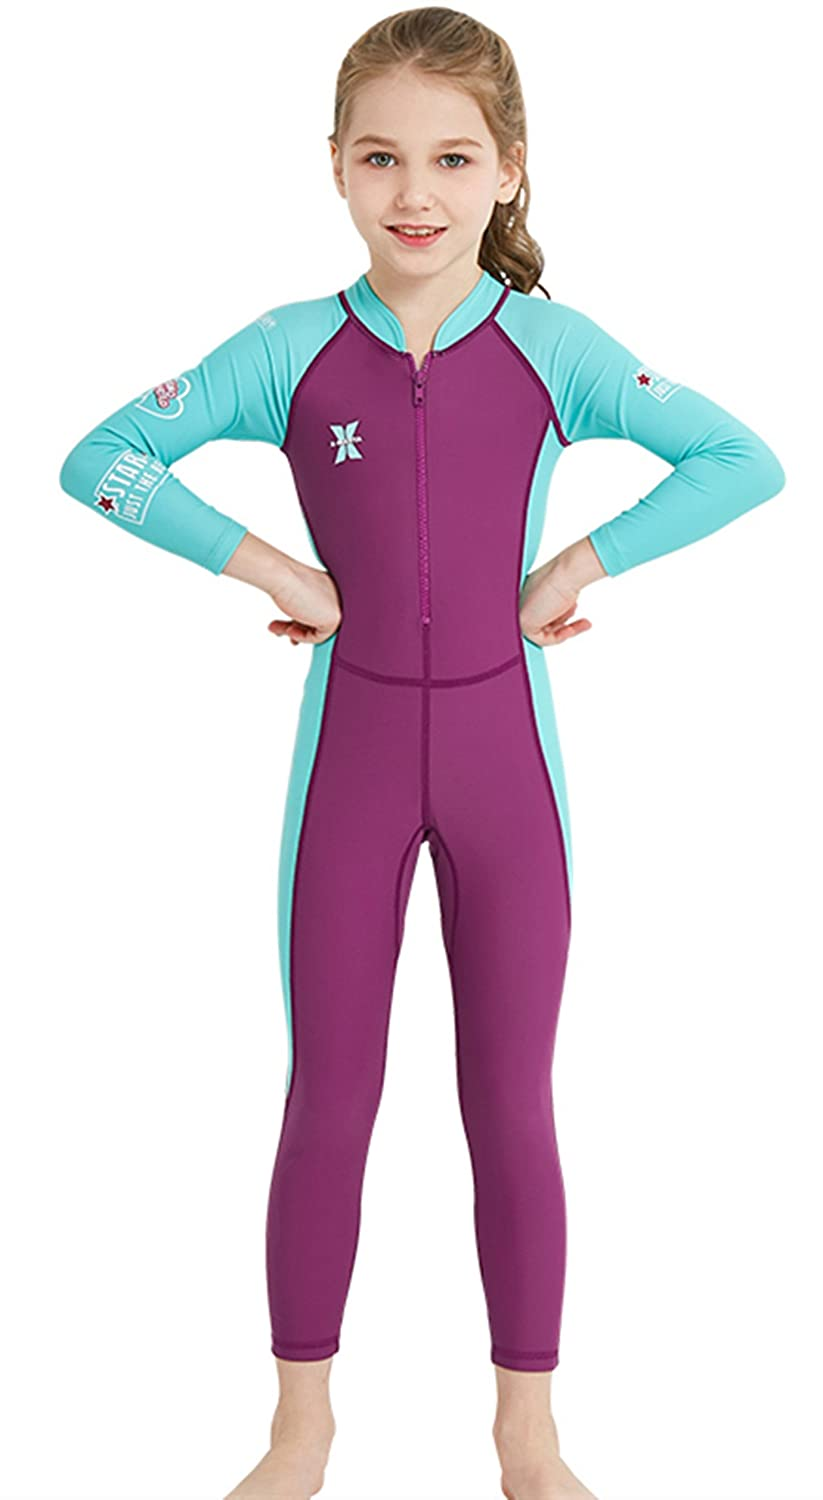 Boys Girls Kids Long Sleeve One-Piece Swimsuit Neoprene Wetsuits Summer Pink